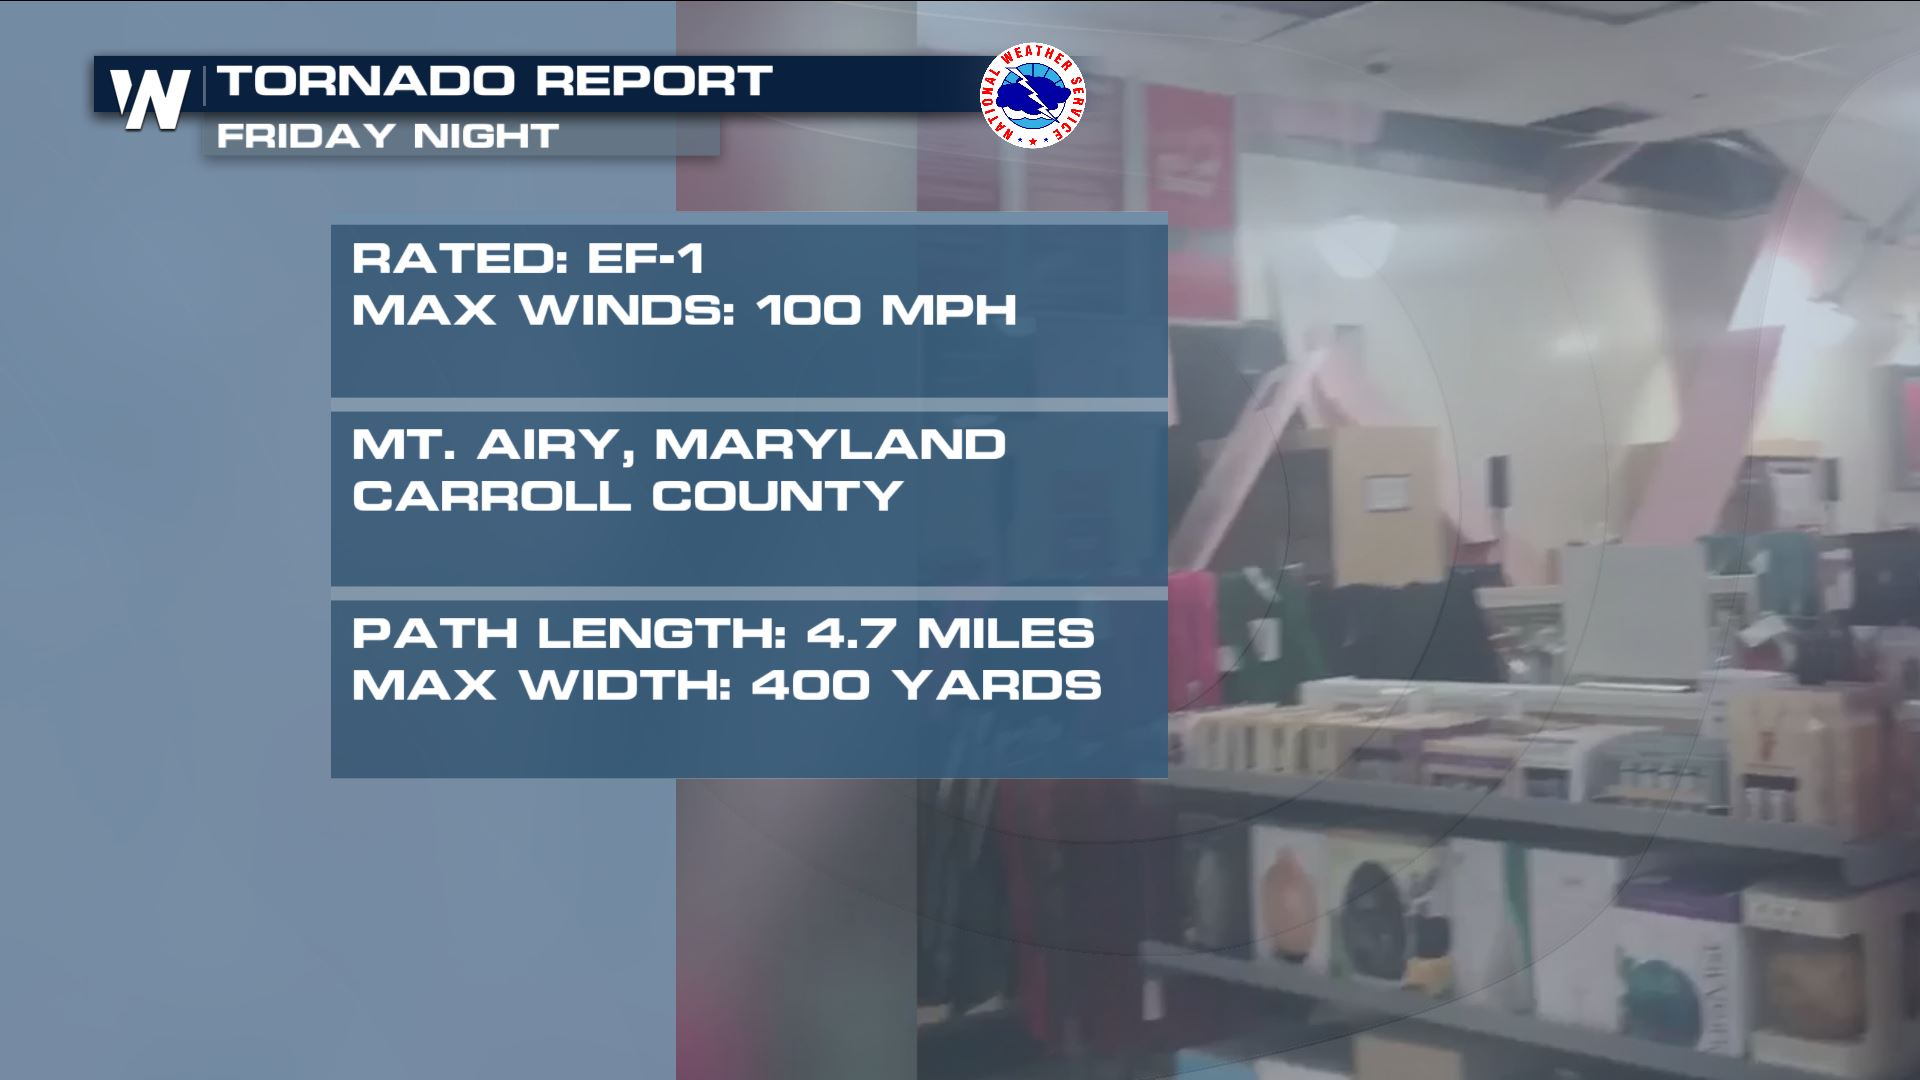 Tornadoes Confirmed in Maryland Friday Night - WeatherNation